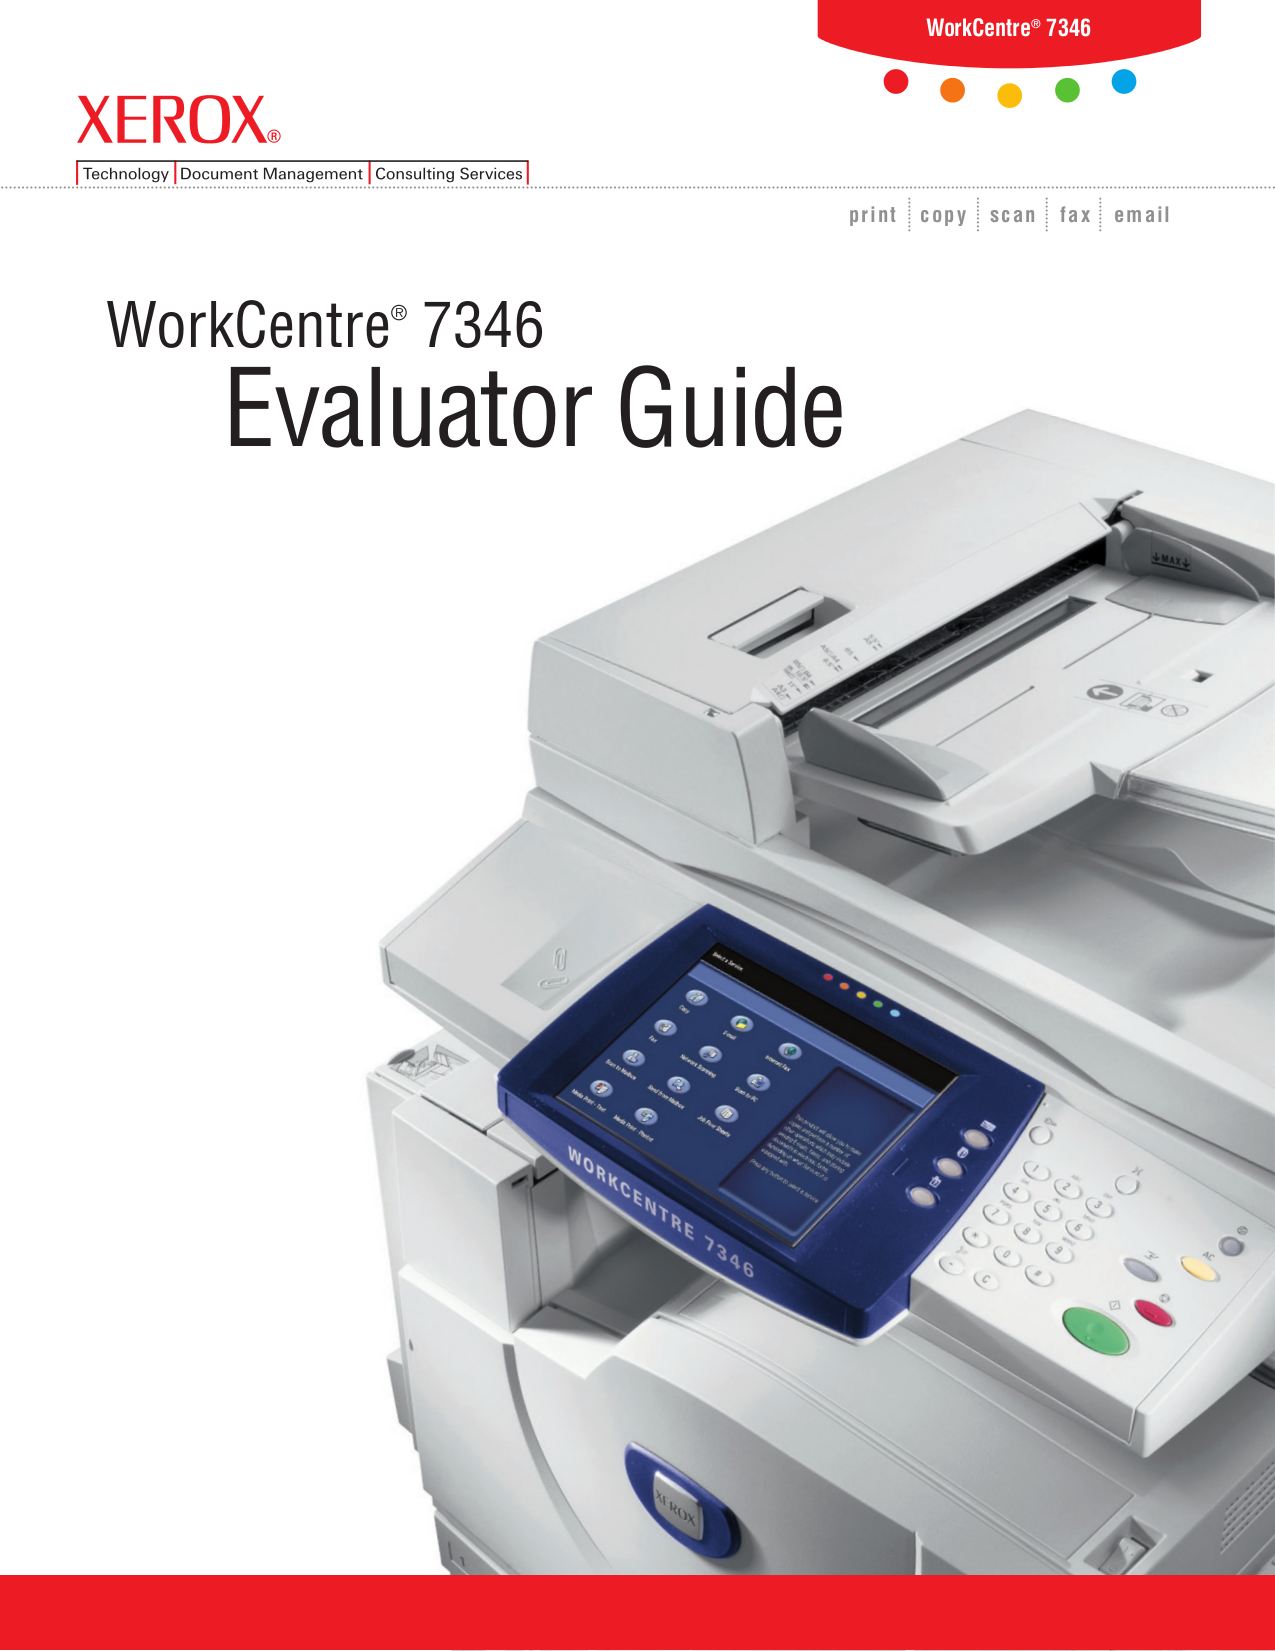 xerox workcentre 7328 manual how to and user guide instructions u2022 rh taxibermuda co xerox wc 7335 service manual xerox workcentre 7335 service manual